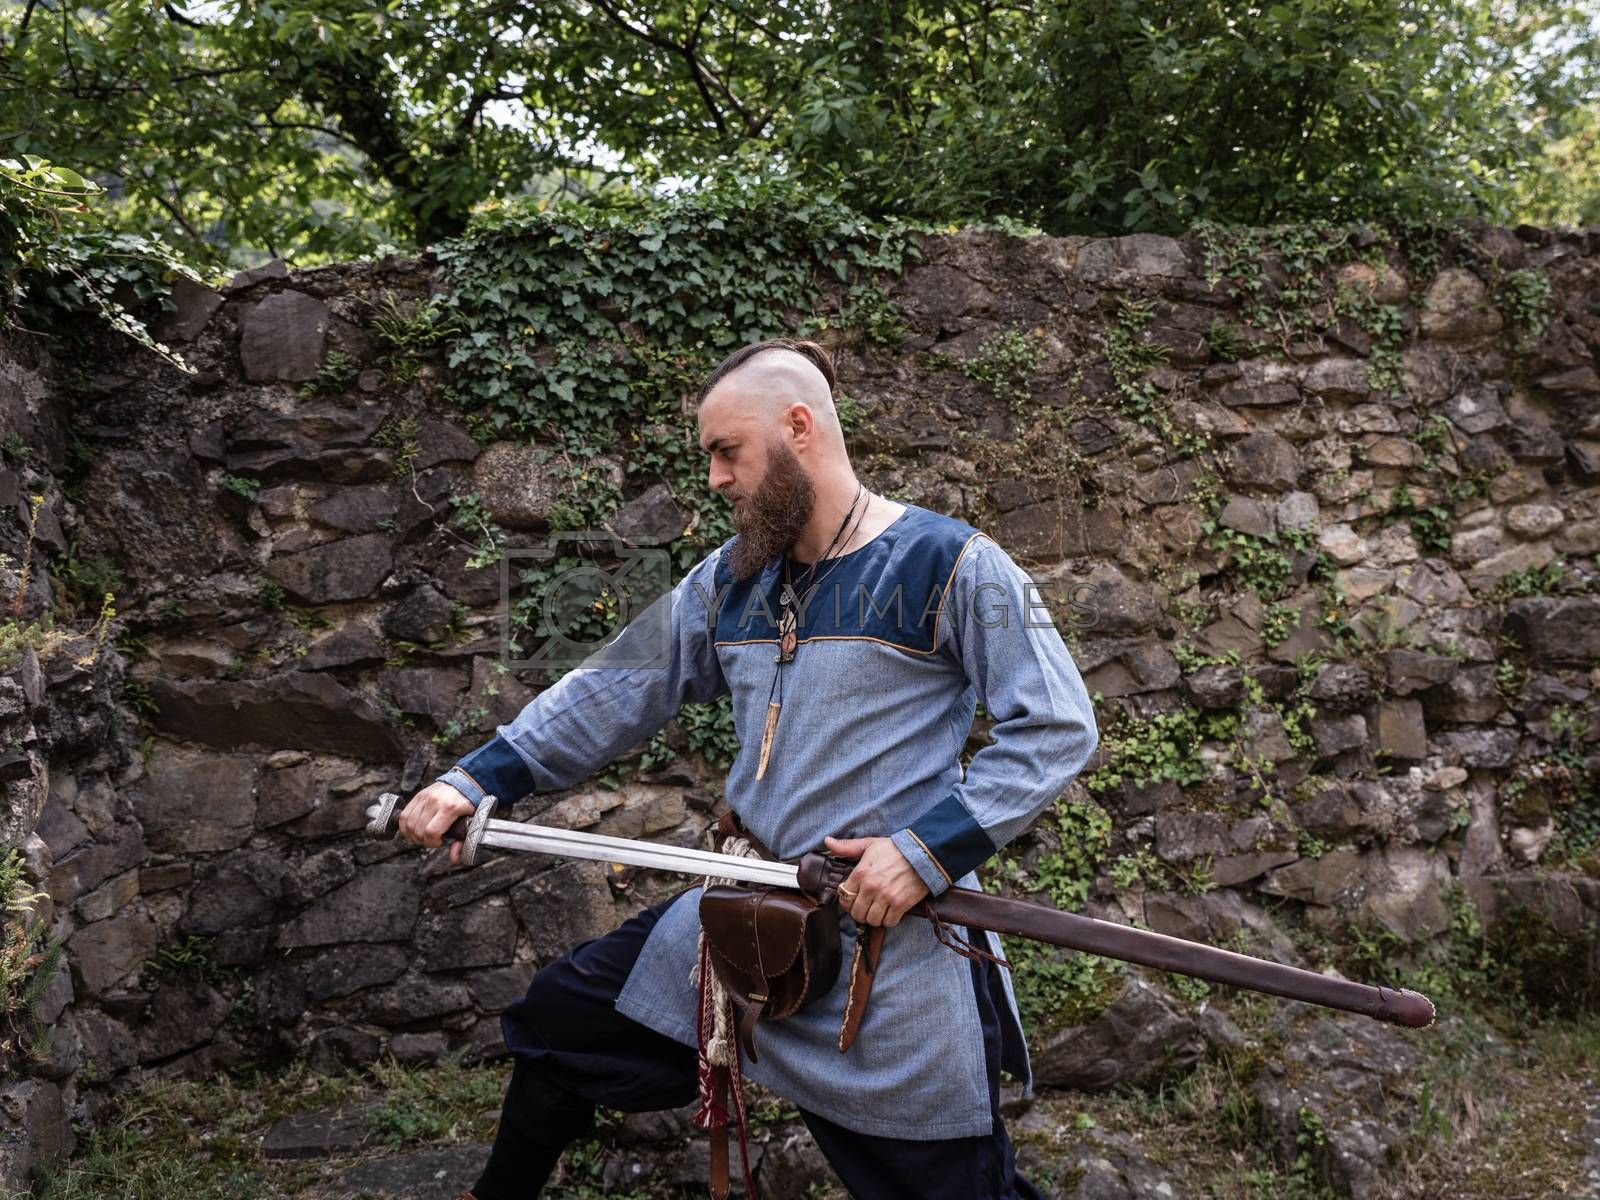 Medieval warrior draws sword from scabbard, Viking in traditional clothing